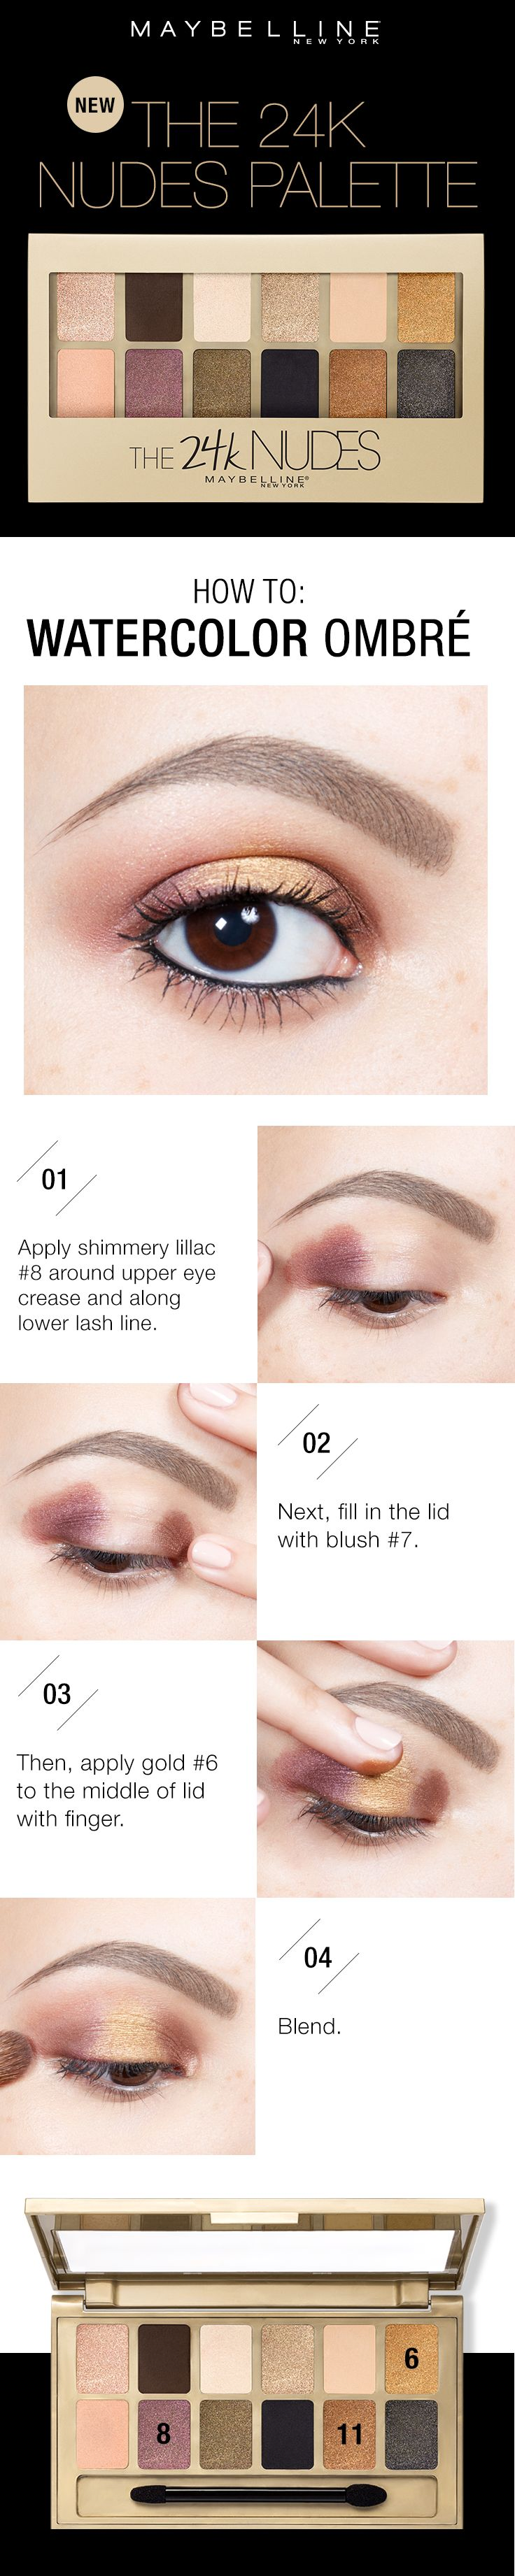 Get this beautiful watercolor ombre eyeshadow look in four easy steps using the Maybelline 24K Nudes Palette. First, apply shimmer lilac shade around the upper eye crease and along the lower lash line. Next, fill in the lid with the blush shade. Then, apply the gold shade in the middle of the eye. Lastly, blend to give the watercolor effect.